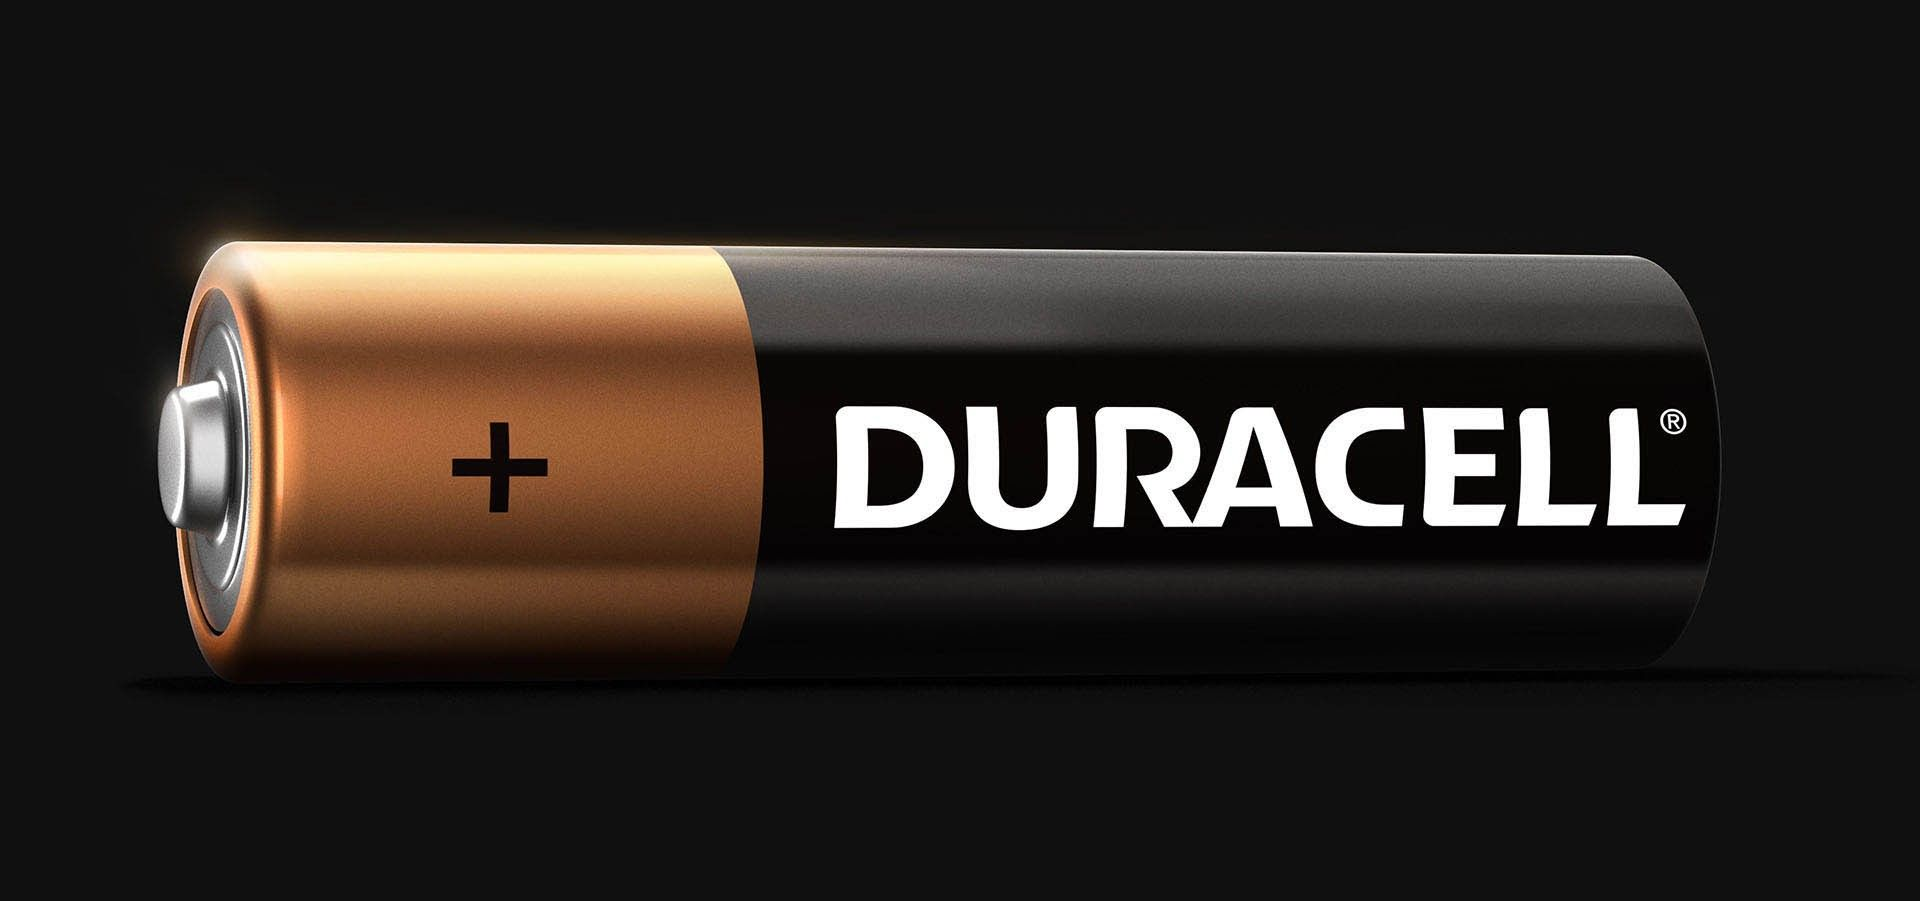 Explore Aa Rechargeable Batteries Chargers Coin Button Batteries And More From Duracell The Longer Lasting A Duracell Battery Lights Rechargeable Batteries